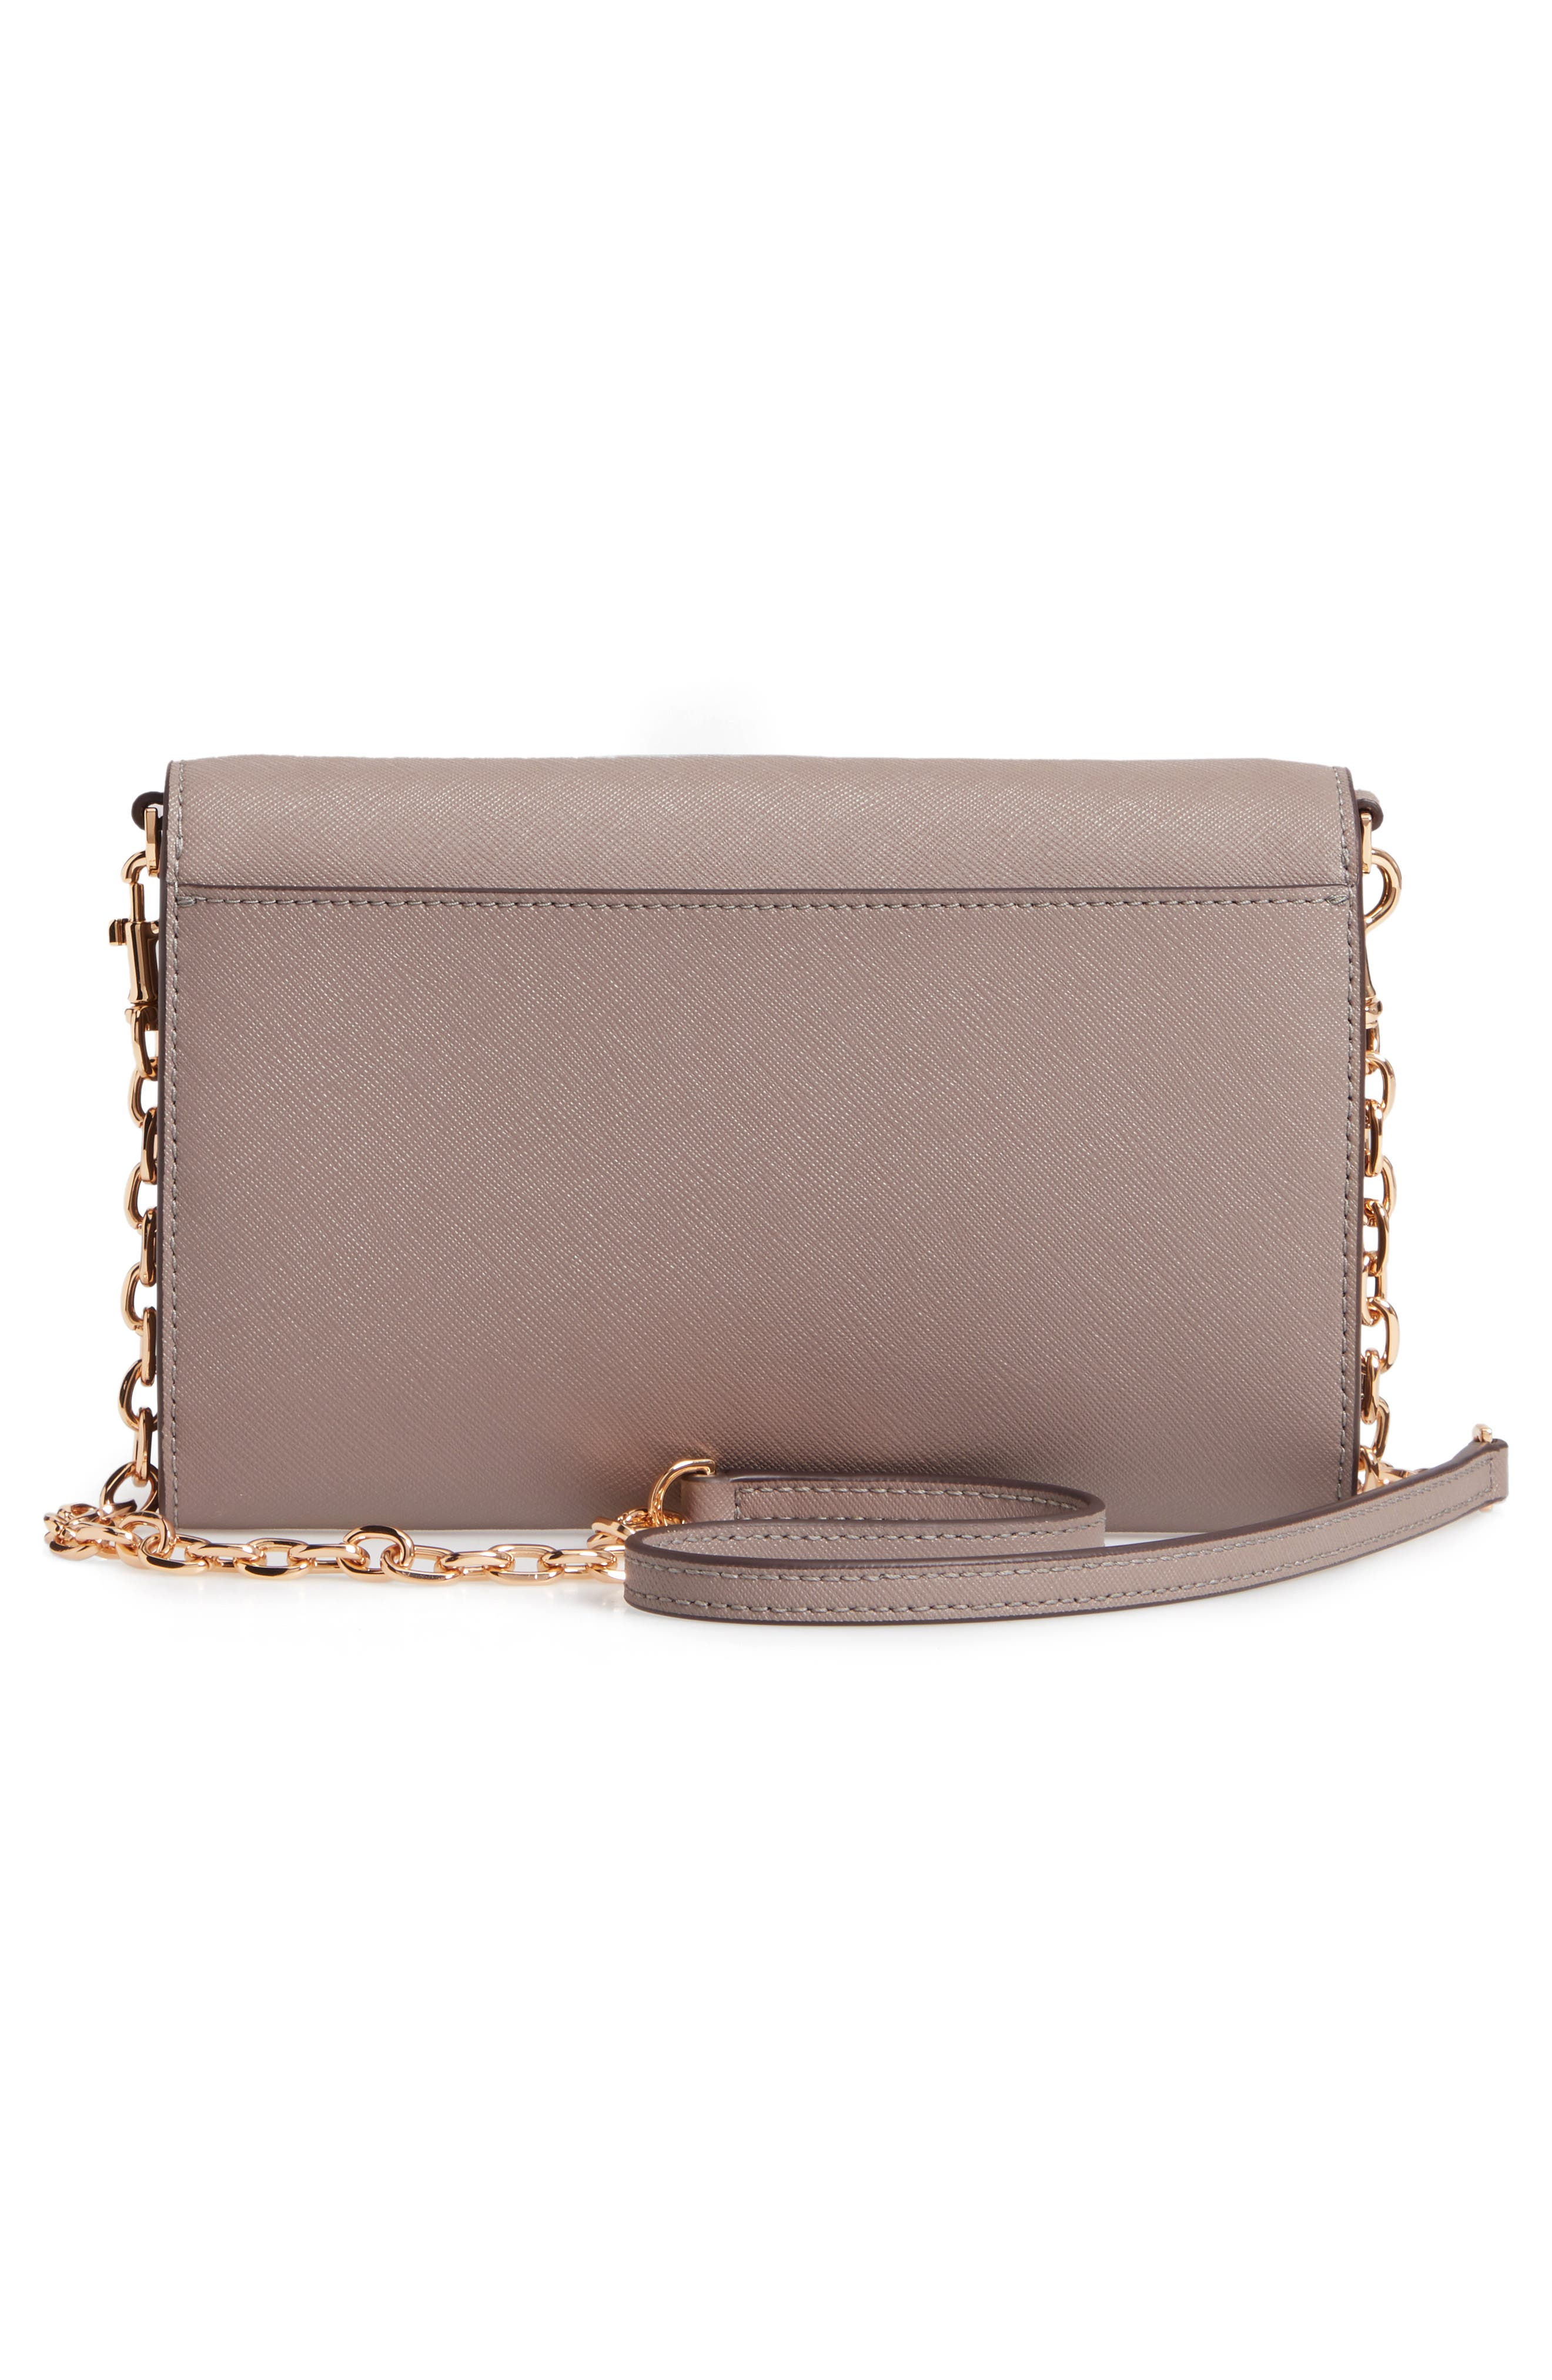 TORY BURCH, Robinson Leather Wallet on a Chain, Alternate thumbnail 3, color, GRAY HERON